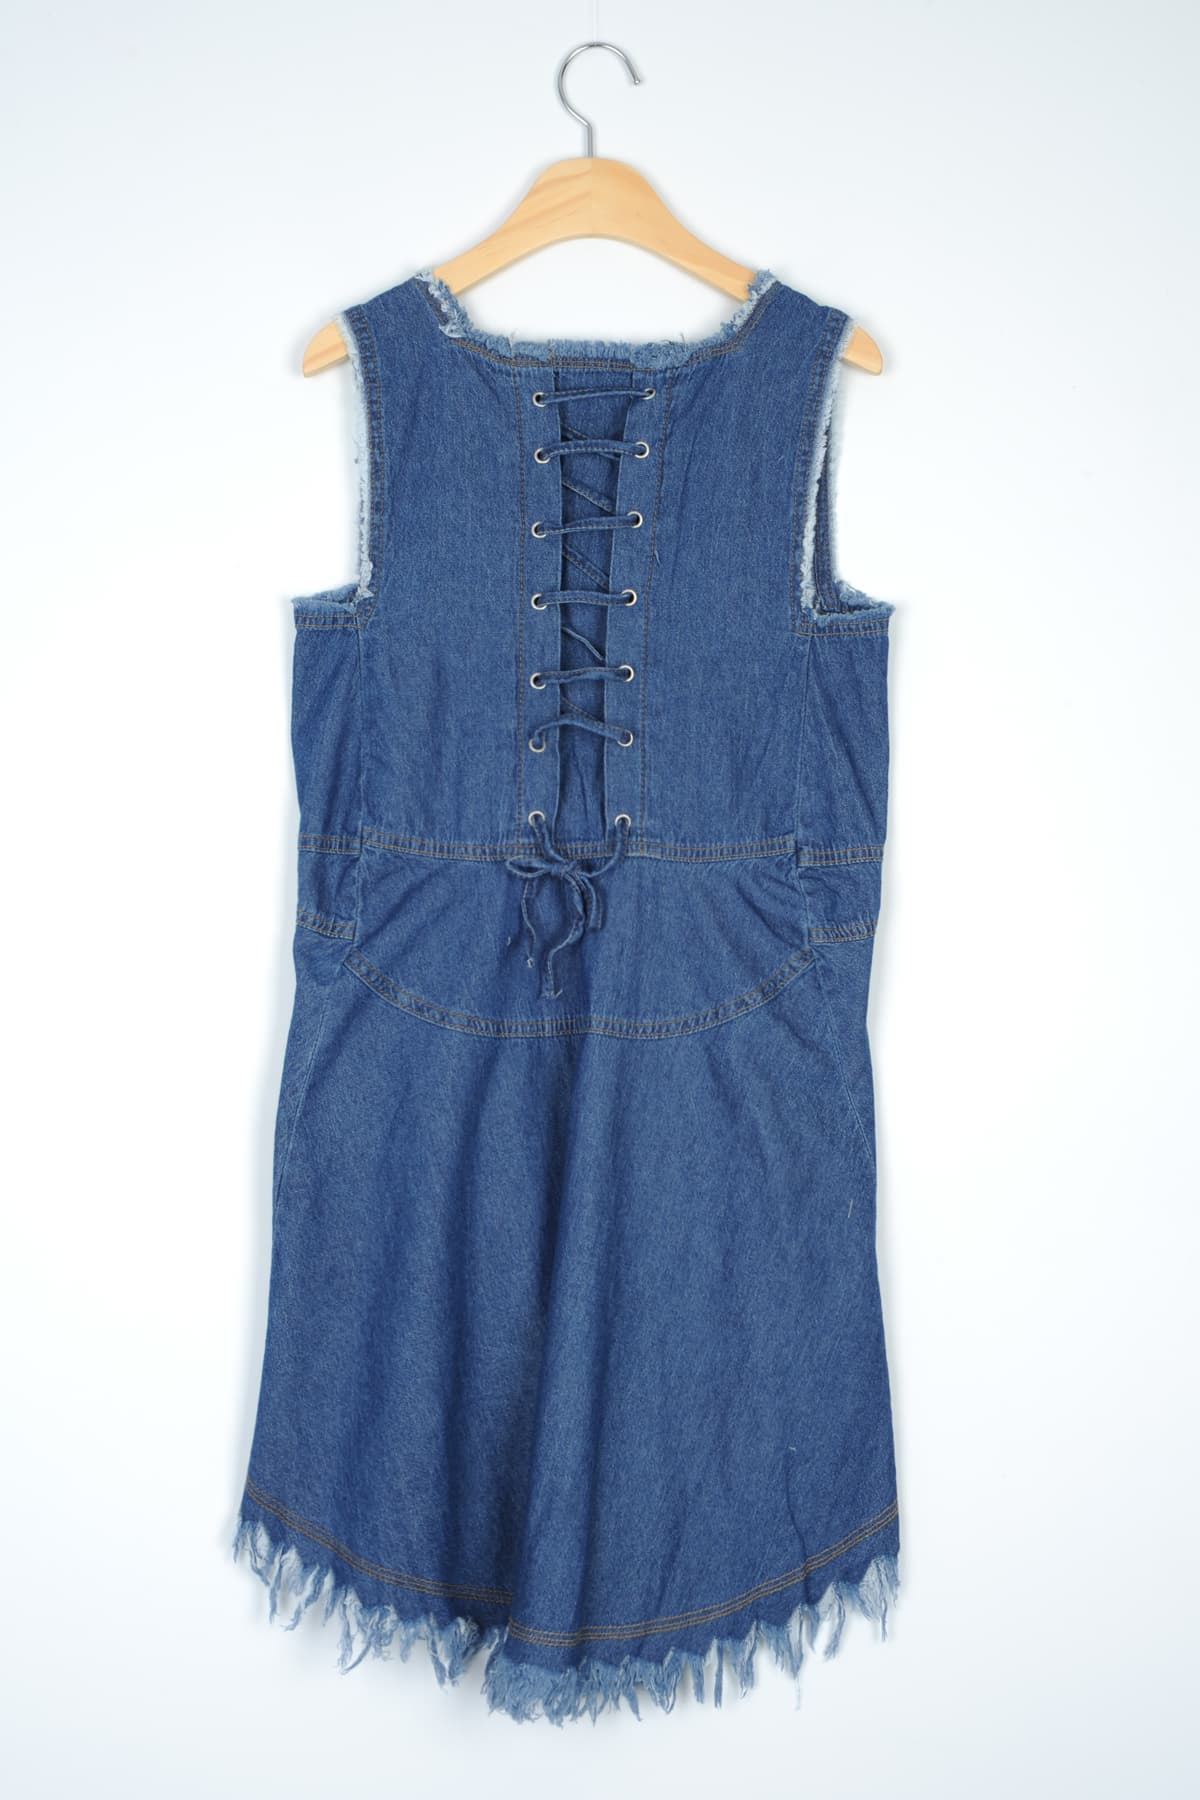 FRINGE HEMLINE DETAIL DENIM DRESS